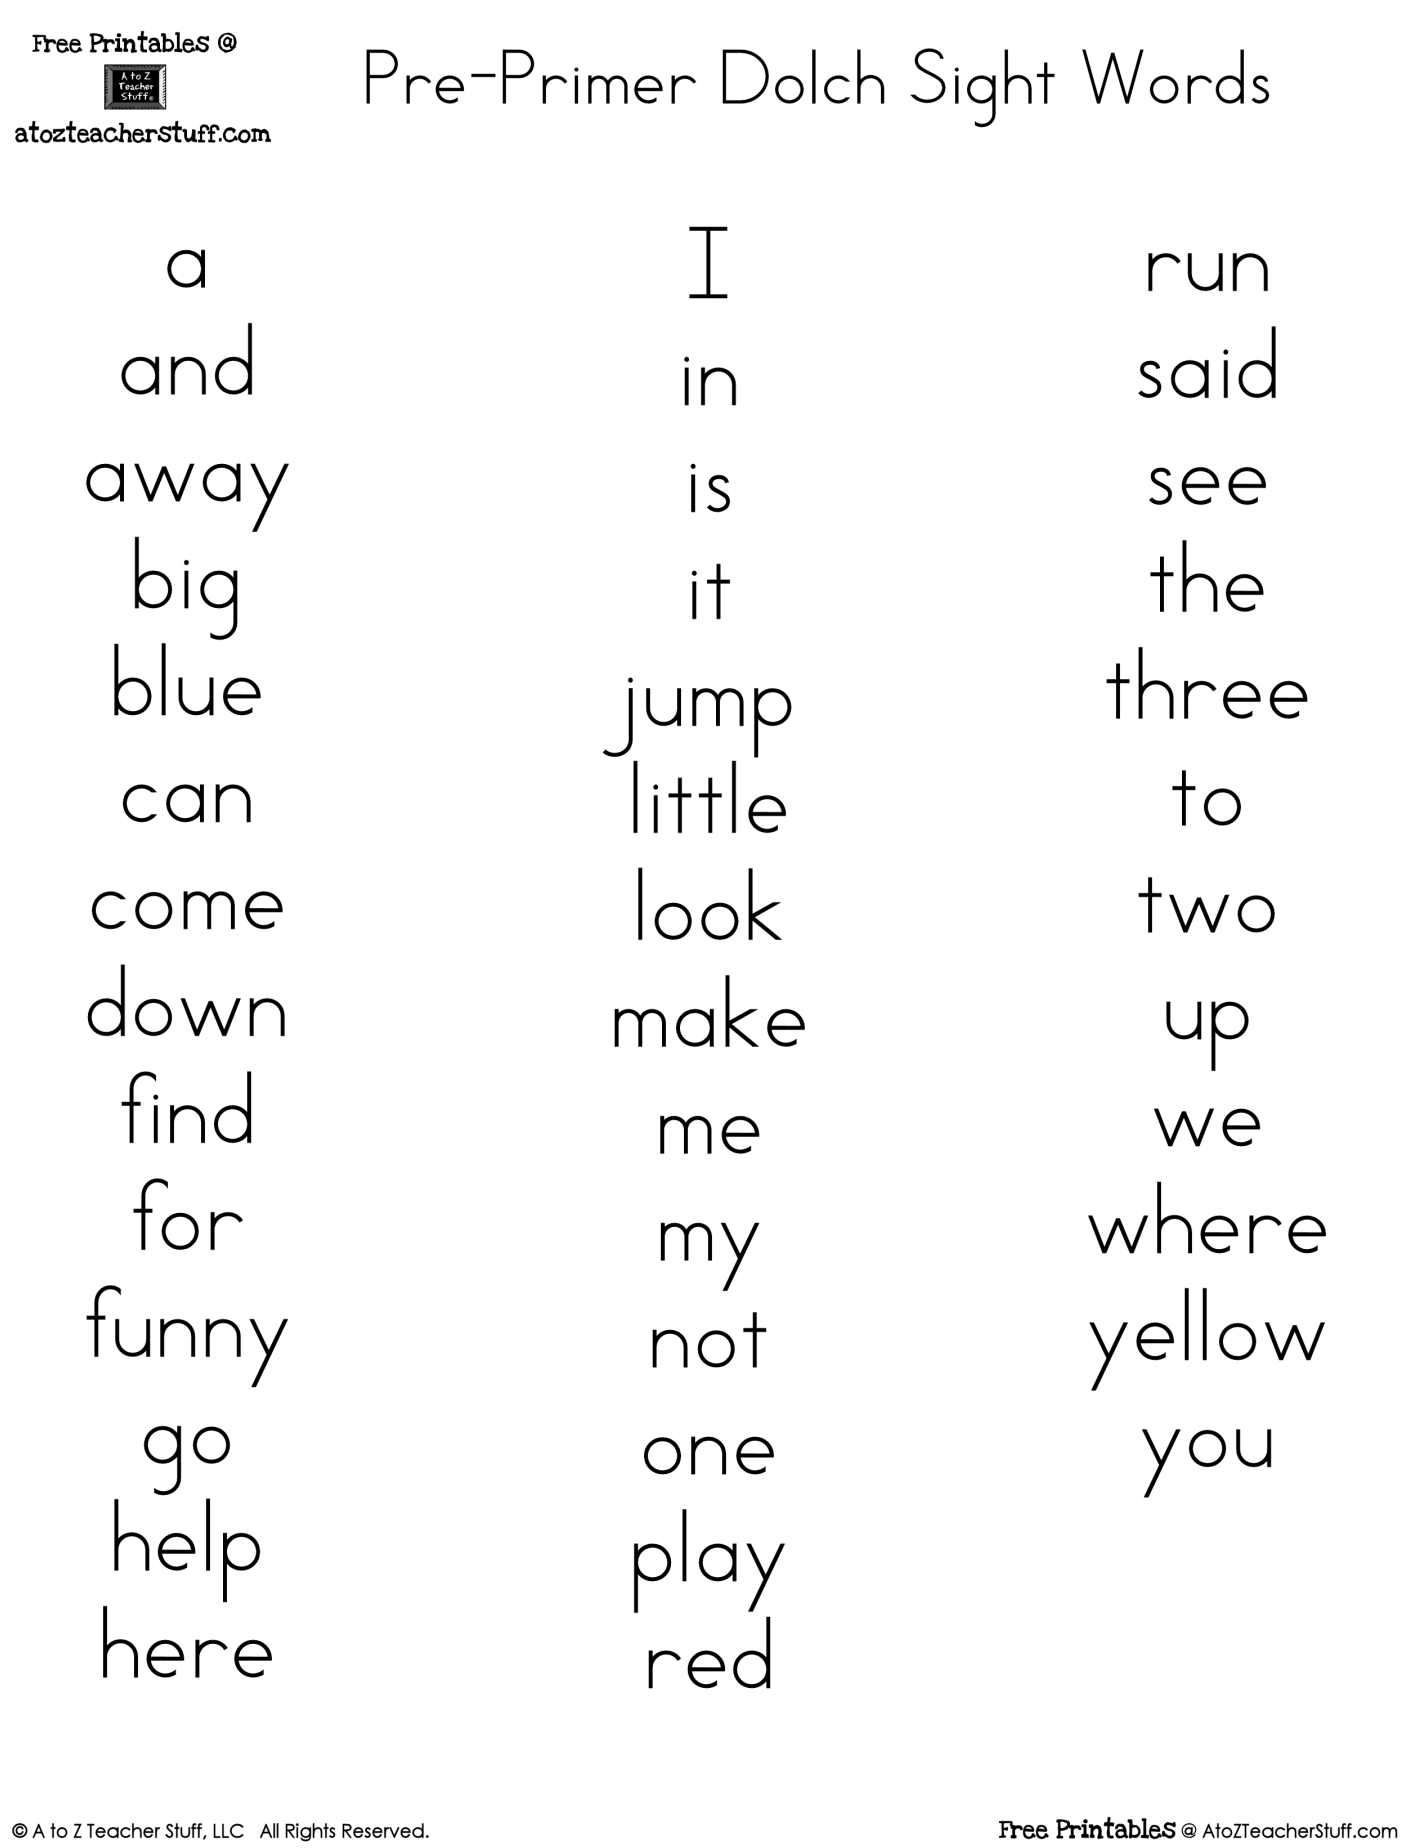 graphic relating to Kindergarten Sight Word List Printable called Printable Dolch Term Lists A towards Z Trainer Things Printable